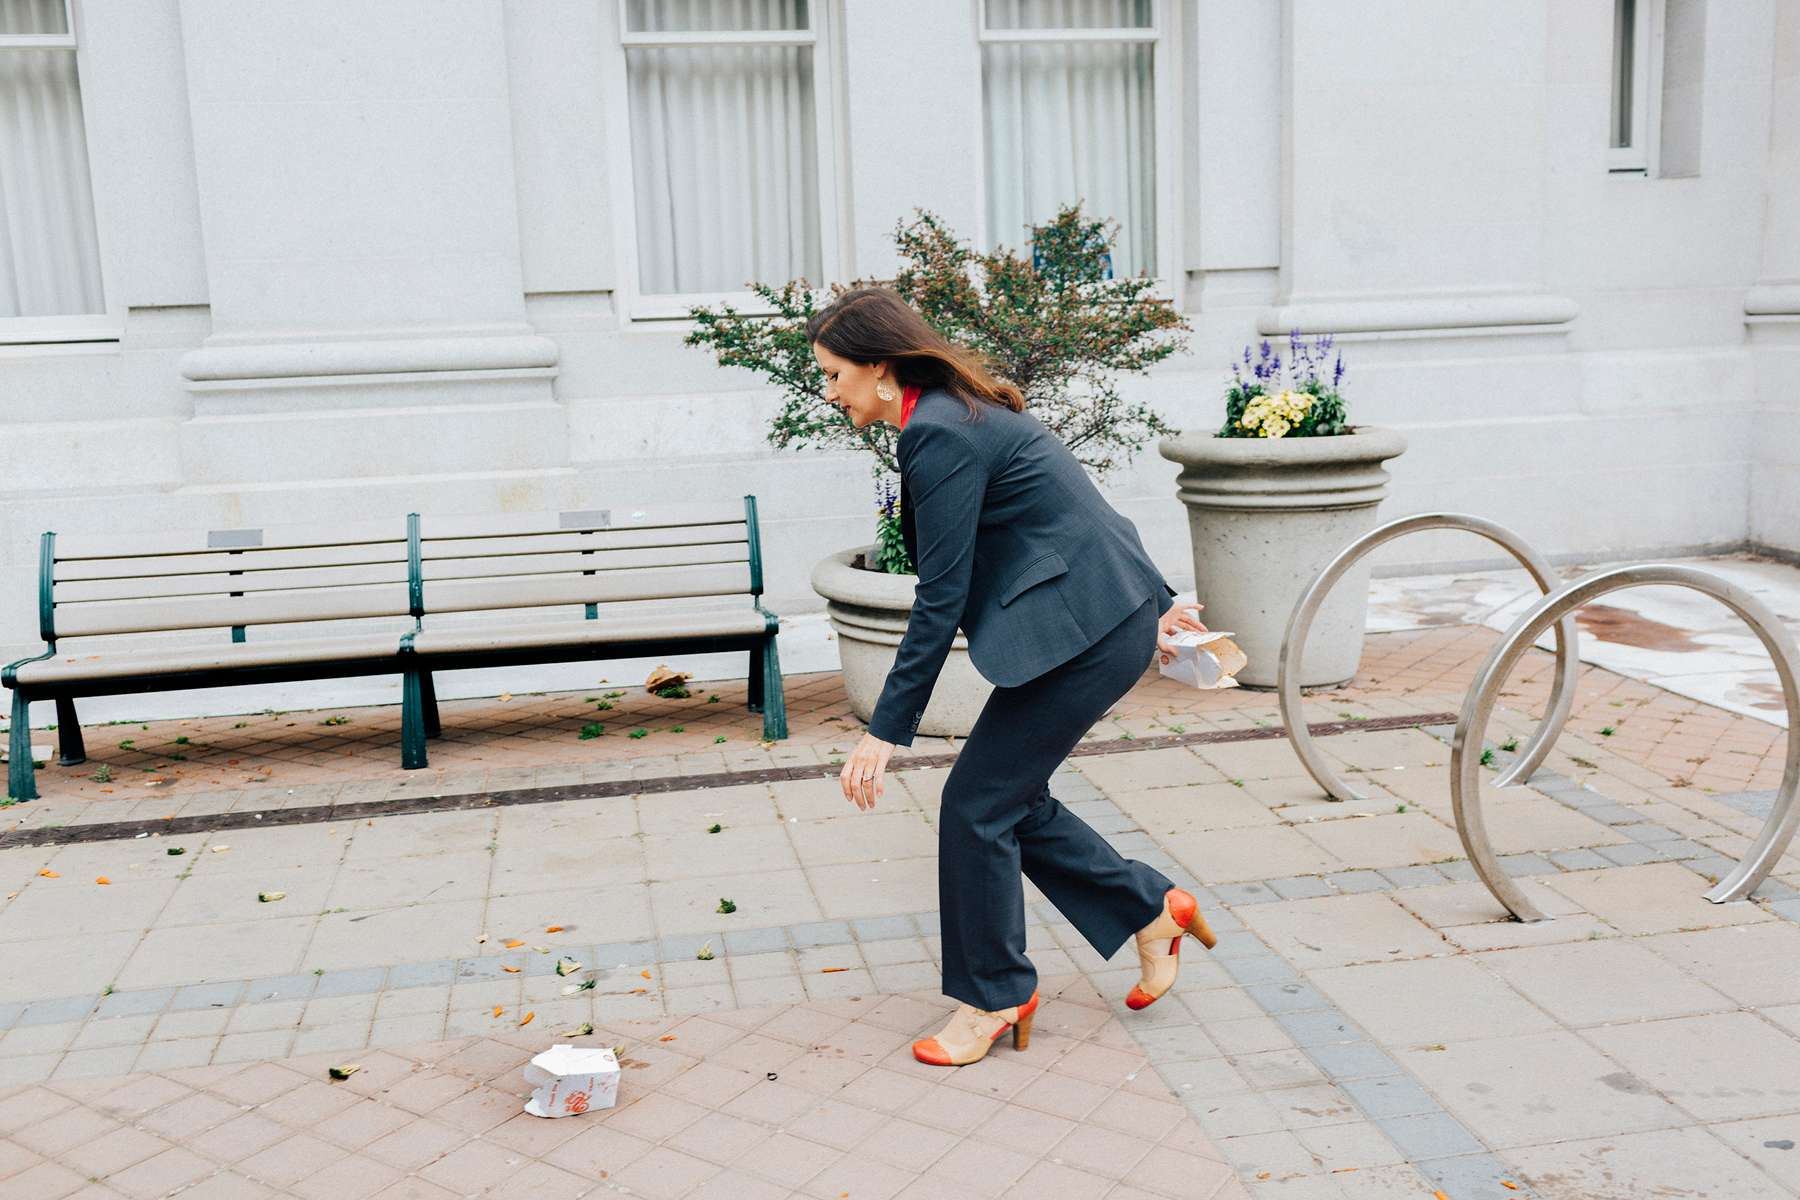 Oakland Mayor Libby Schaaf picks garbage off the sidewalk in front of City Hall on the way to a meeting in downtown Oakland on Wednesday, June 28, 2017 in Oakland, California.